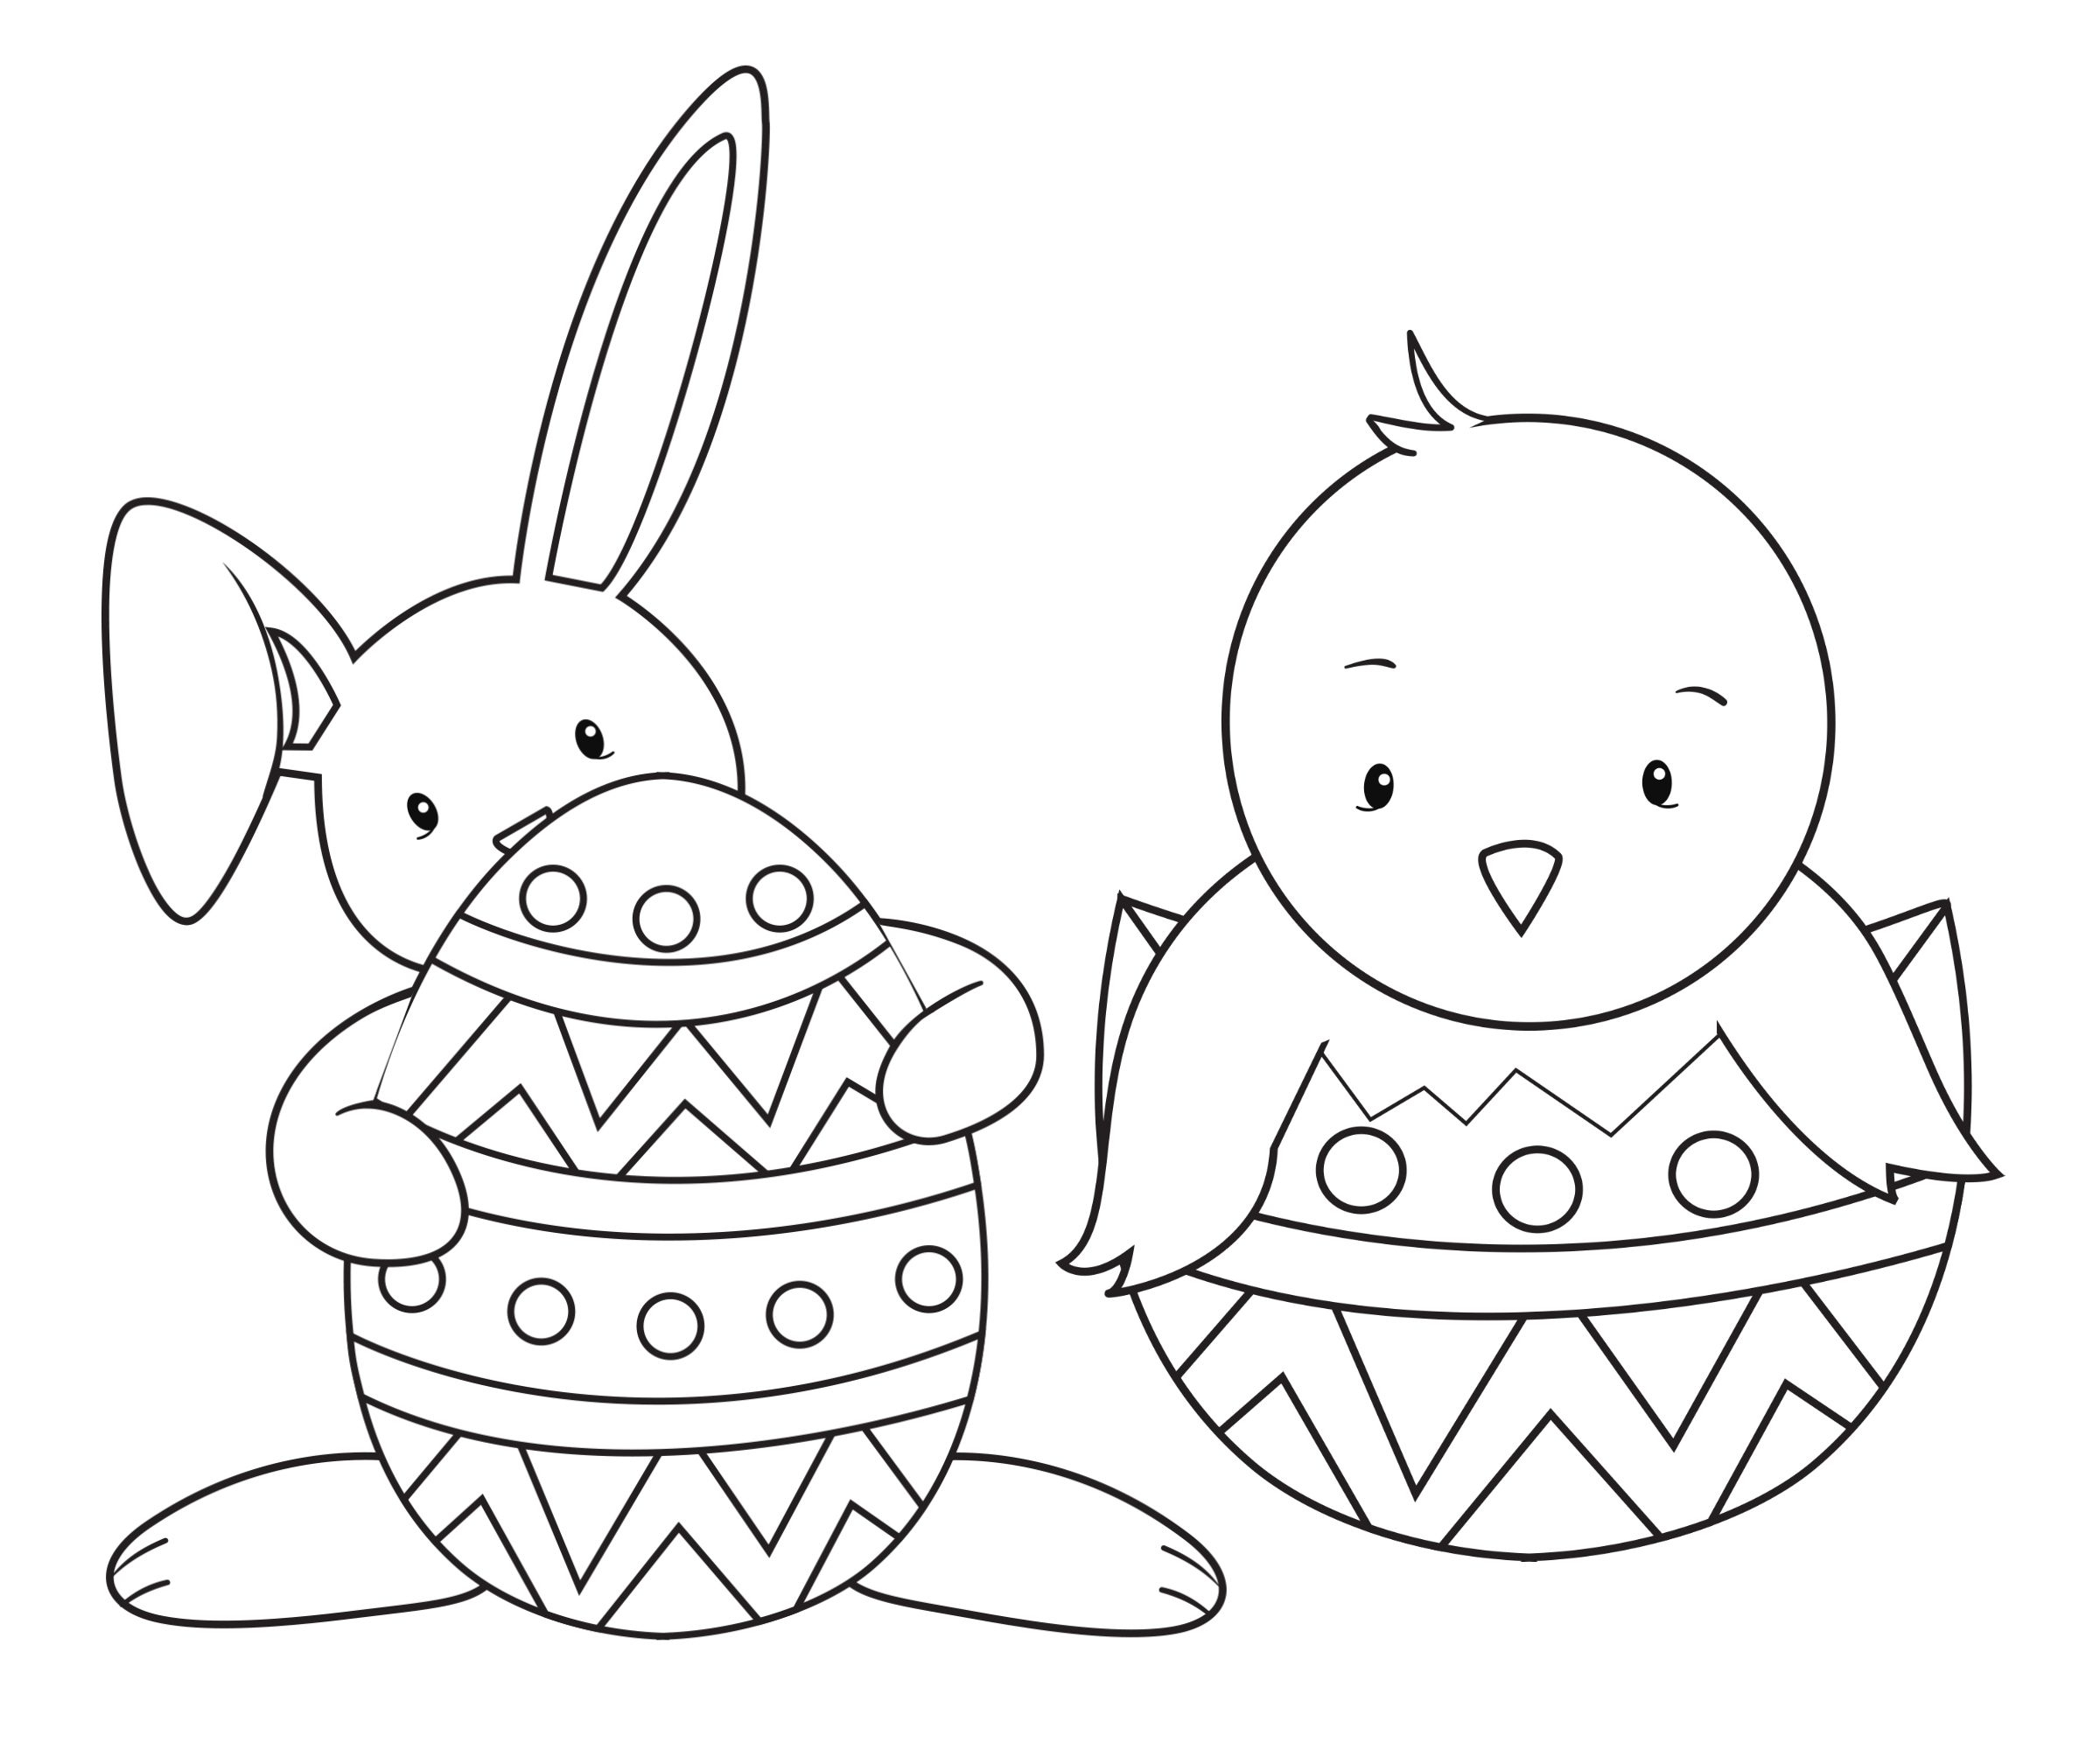 Easter Coloring Pages for Kids to Print Of Bunny Egg by Rustchic Bucket Printable